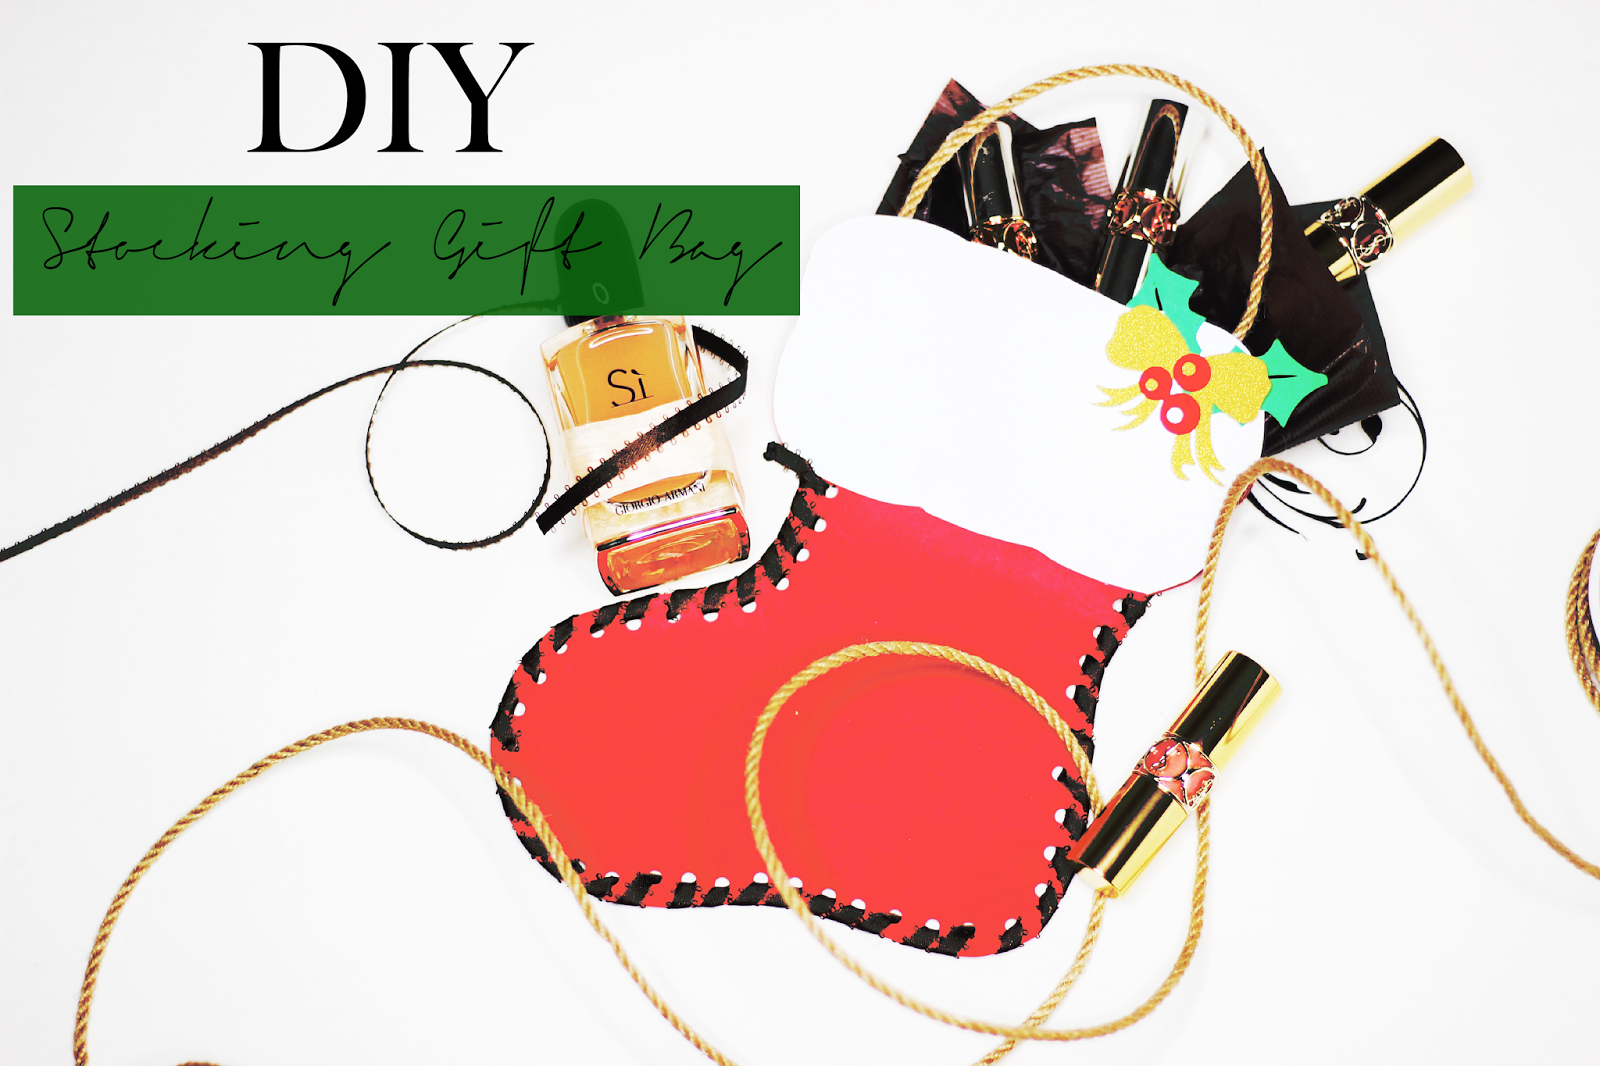 DIY Stocking Gift Bag  || #blogmas Day 5